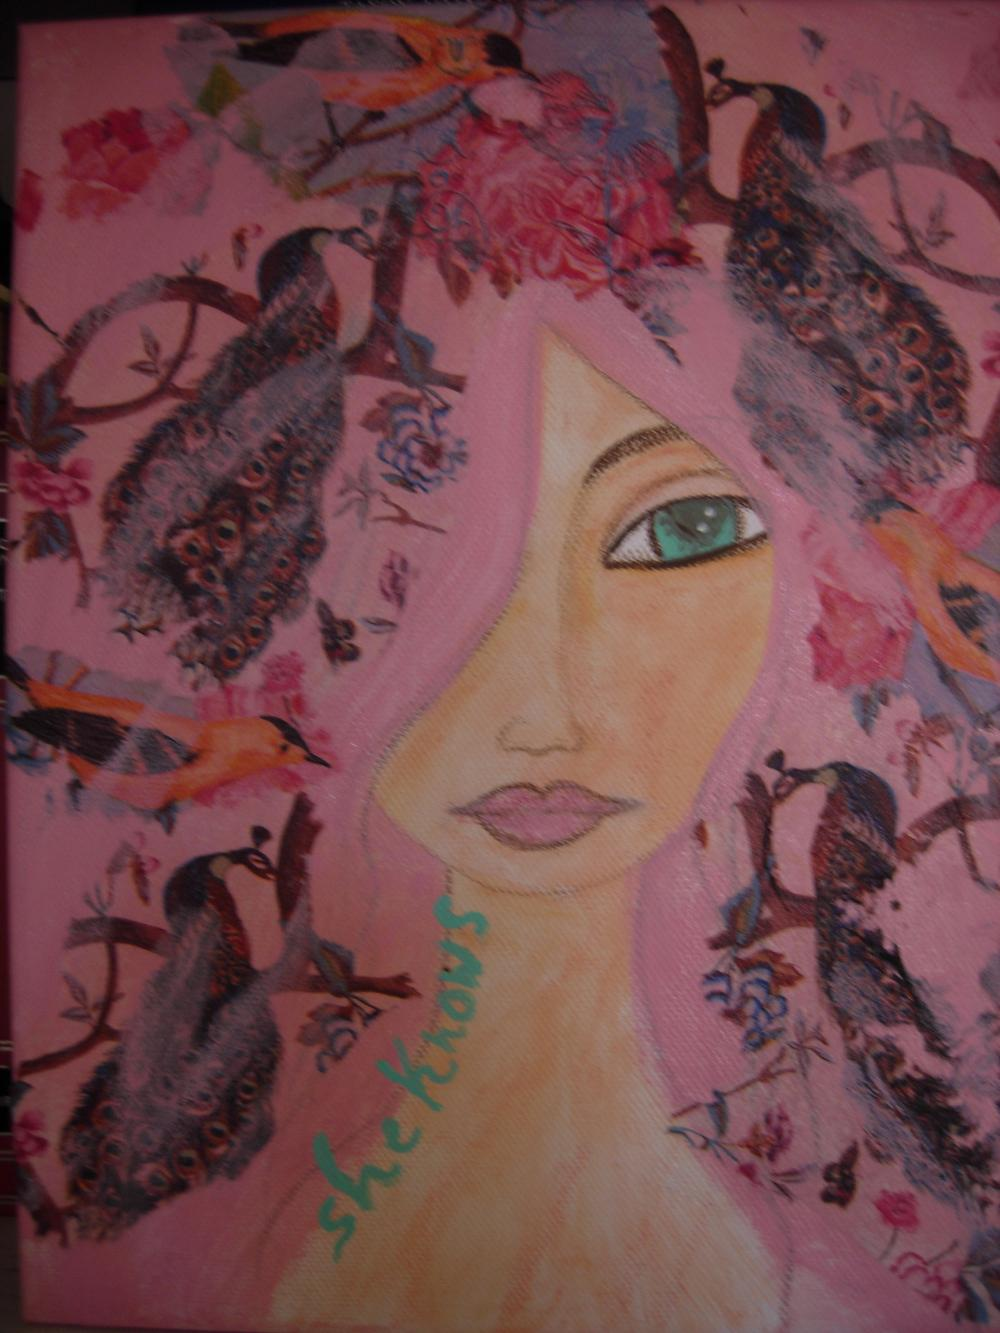 She Knows....-Original mixed media painting and collage on canvas 25x30cm by a Pink Dreamer